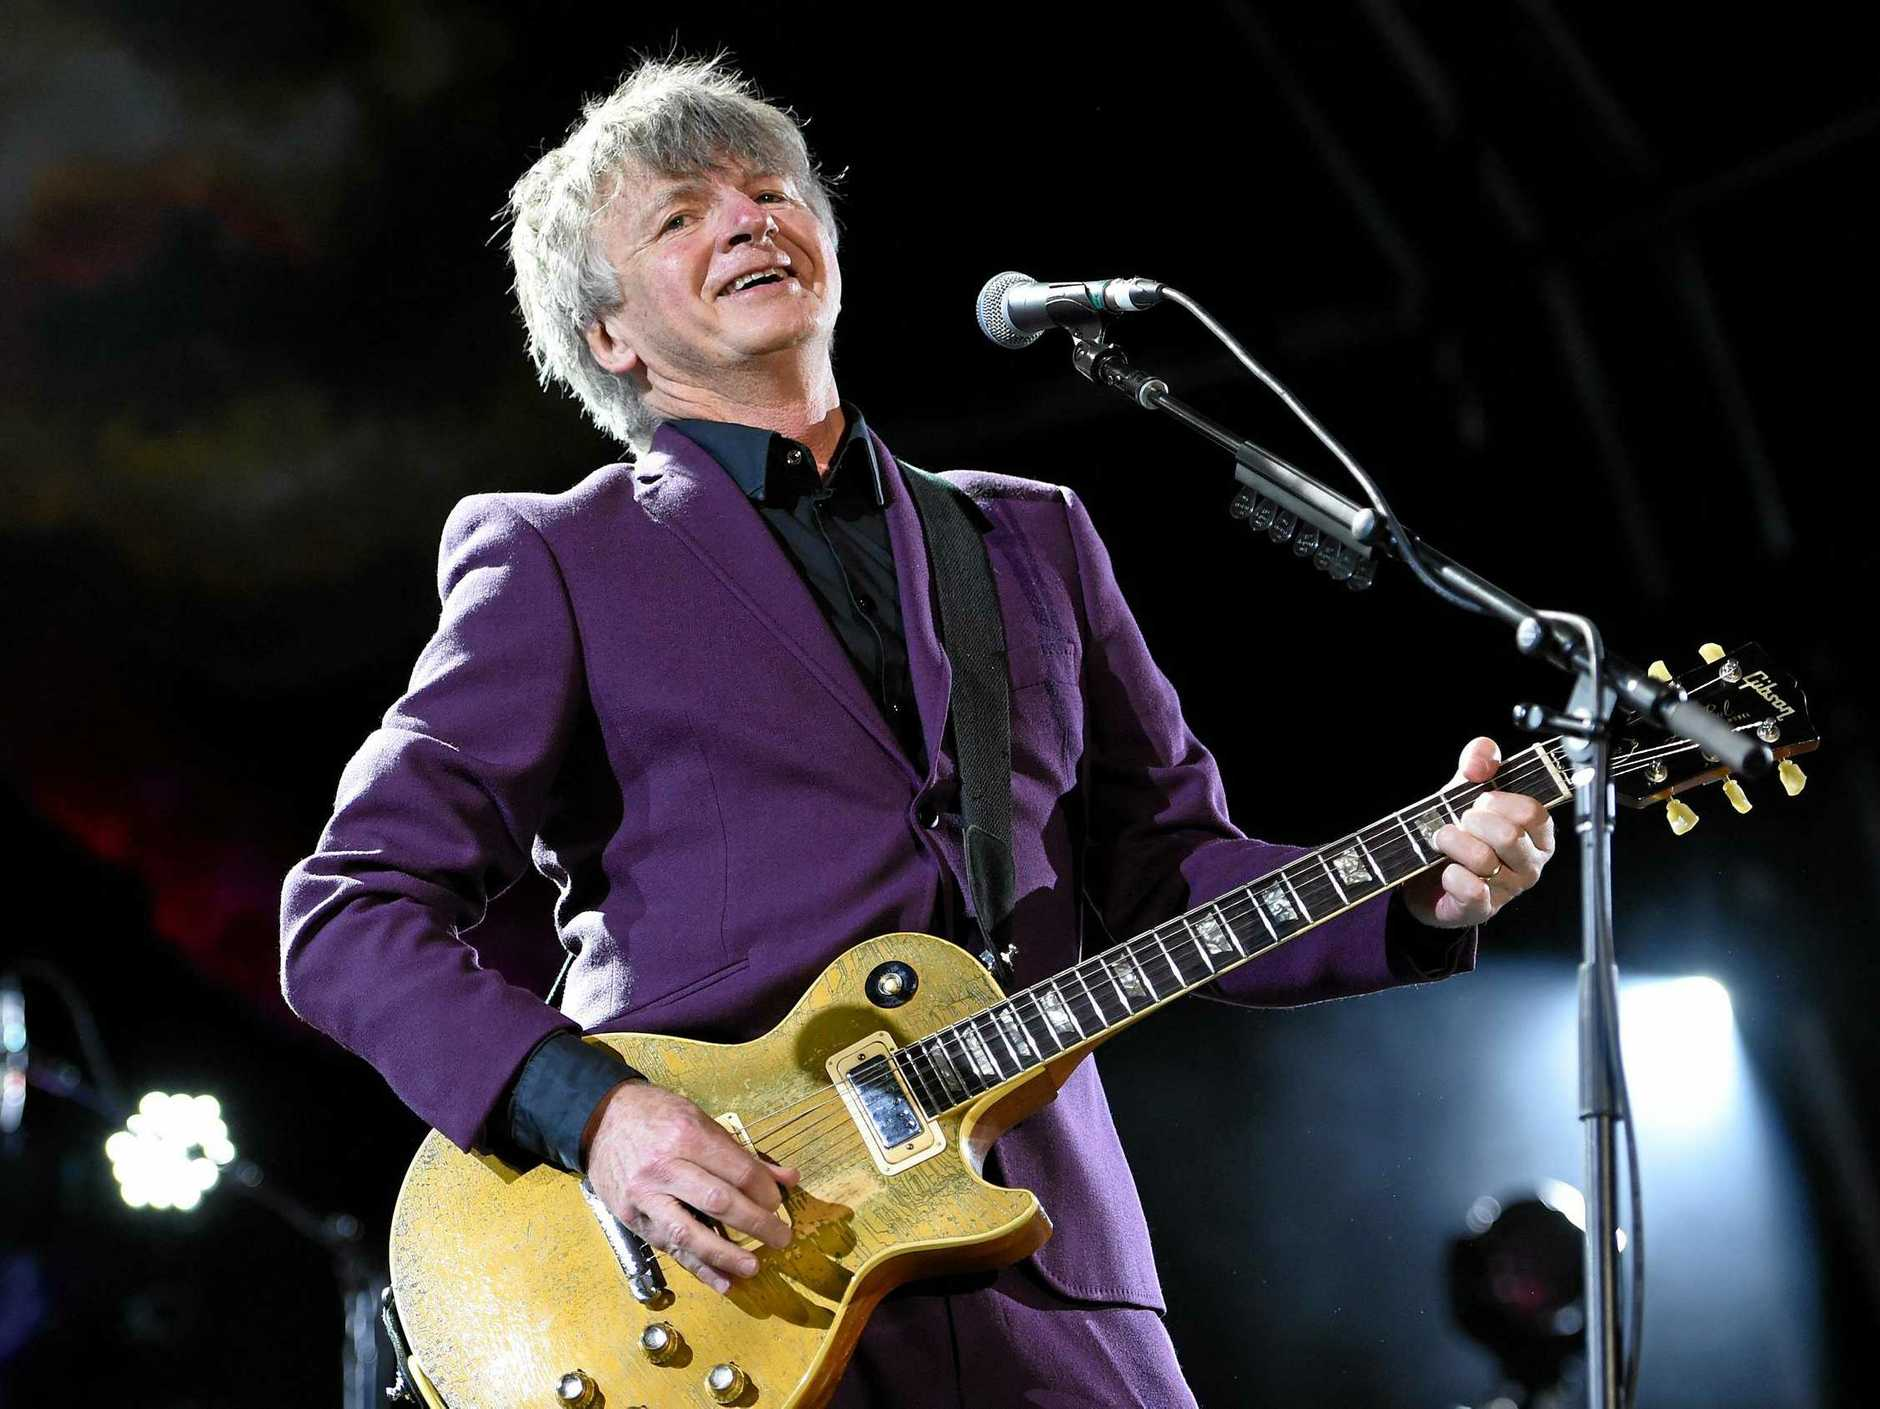 COMING BACK: Neil Finn of Crowded House performs during their 20th anniversary show at the Sydney Opera House, in Sydney, Thursday, Nov. 24, 2016.